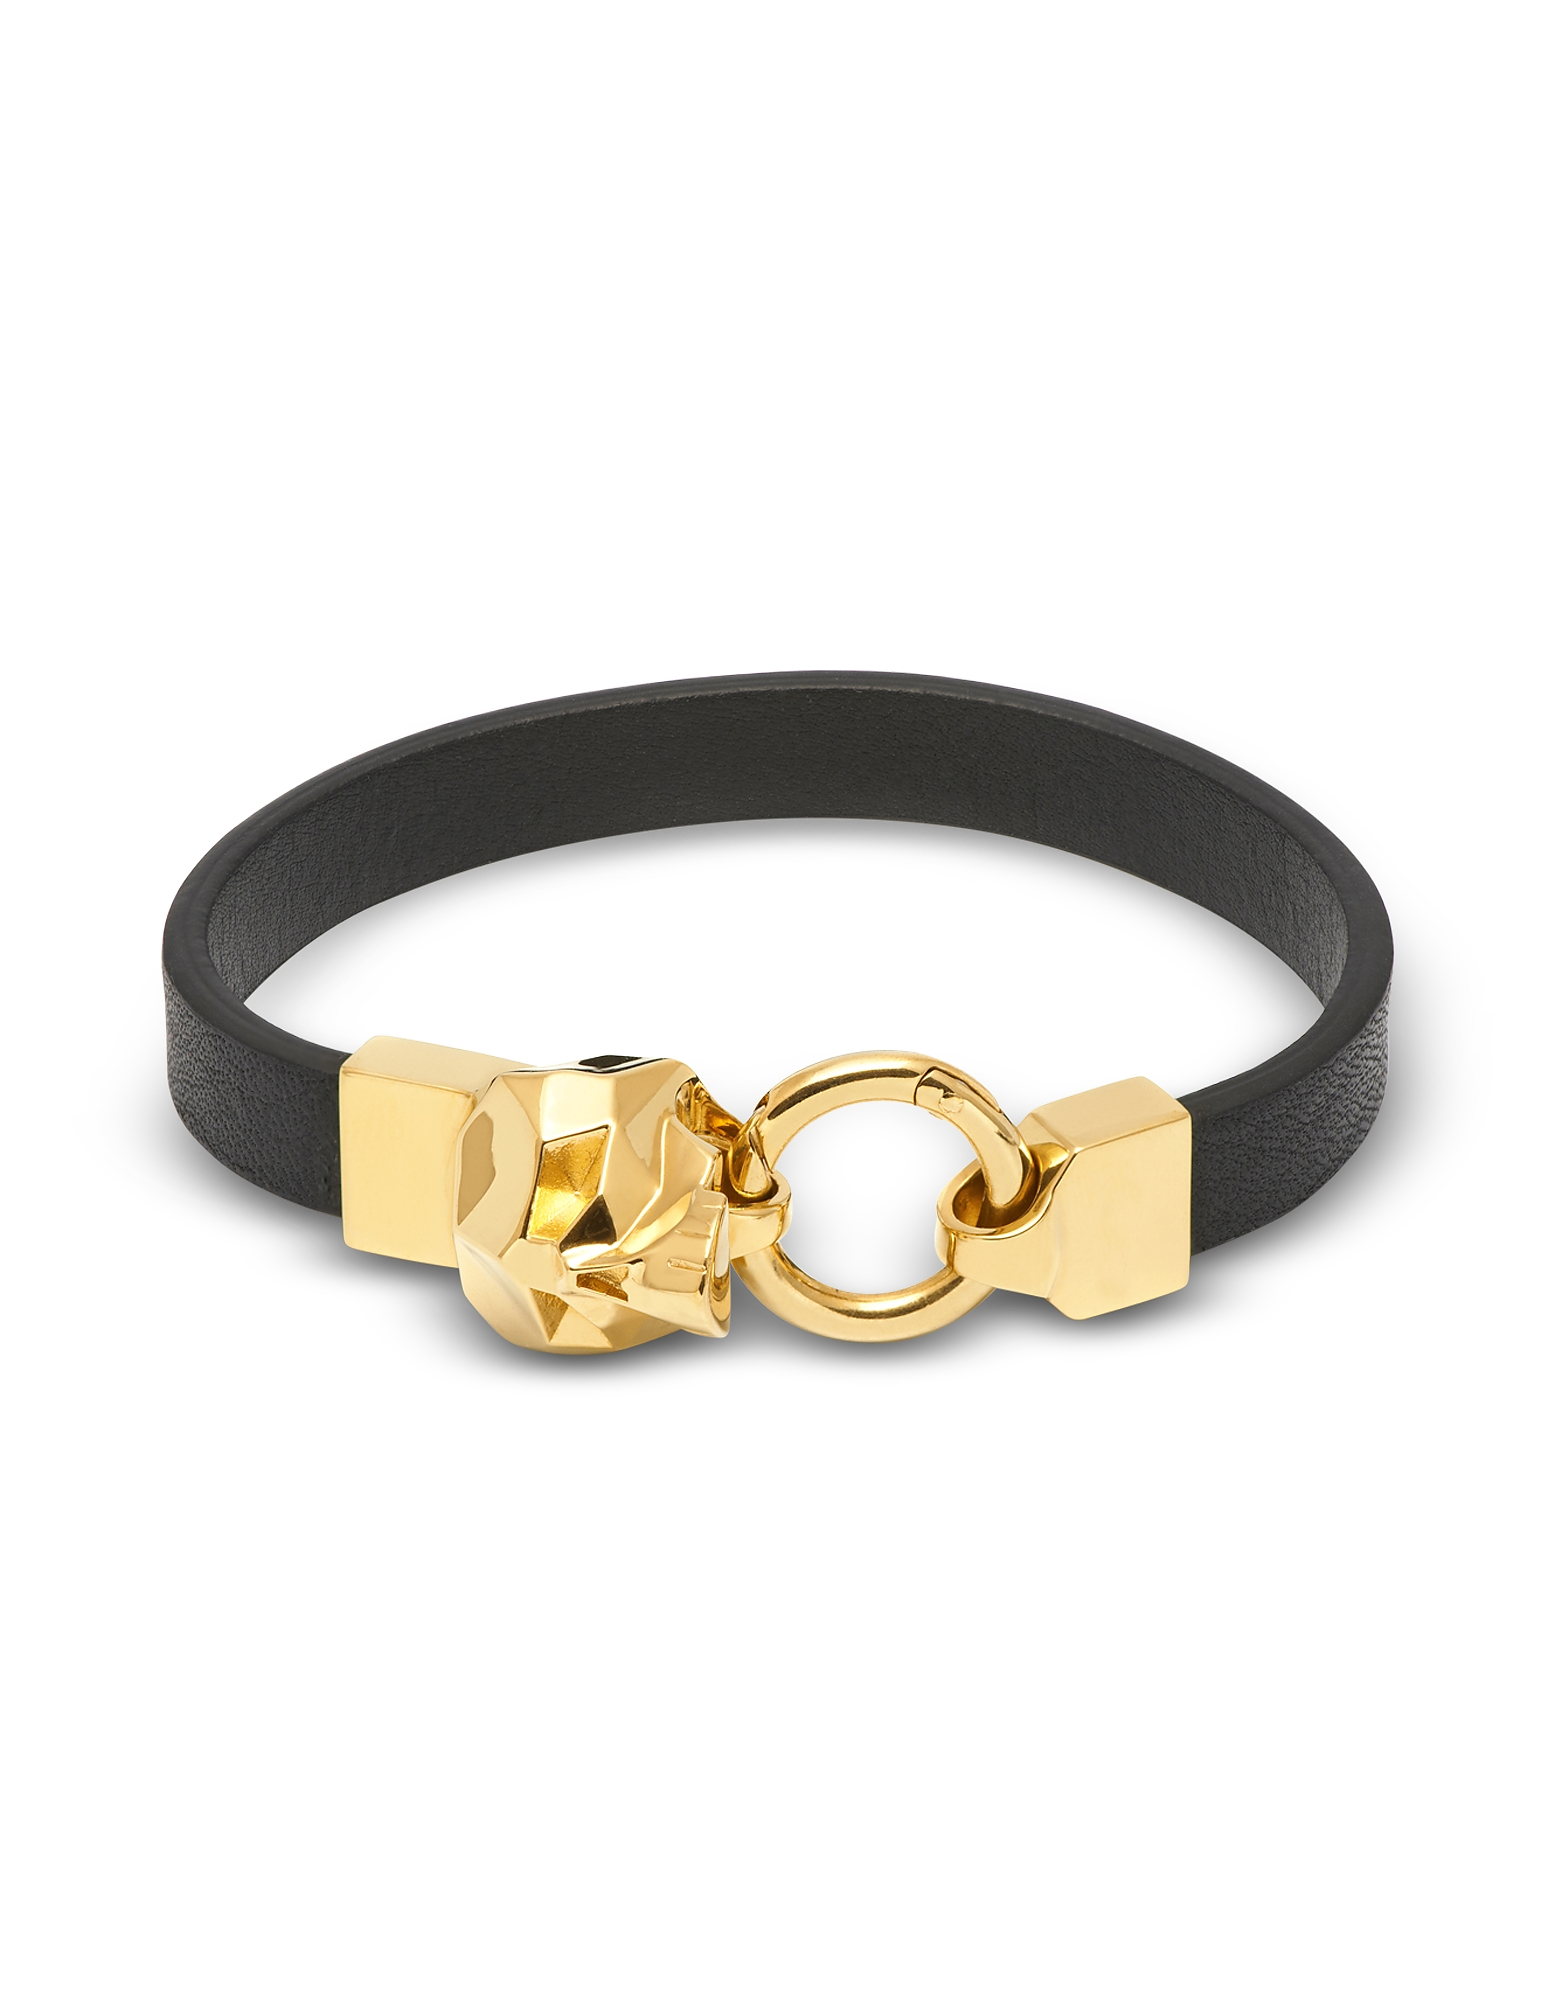 Hexagus Skull Leather Bracelet_Yellow Gold